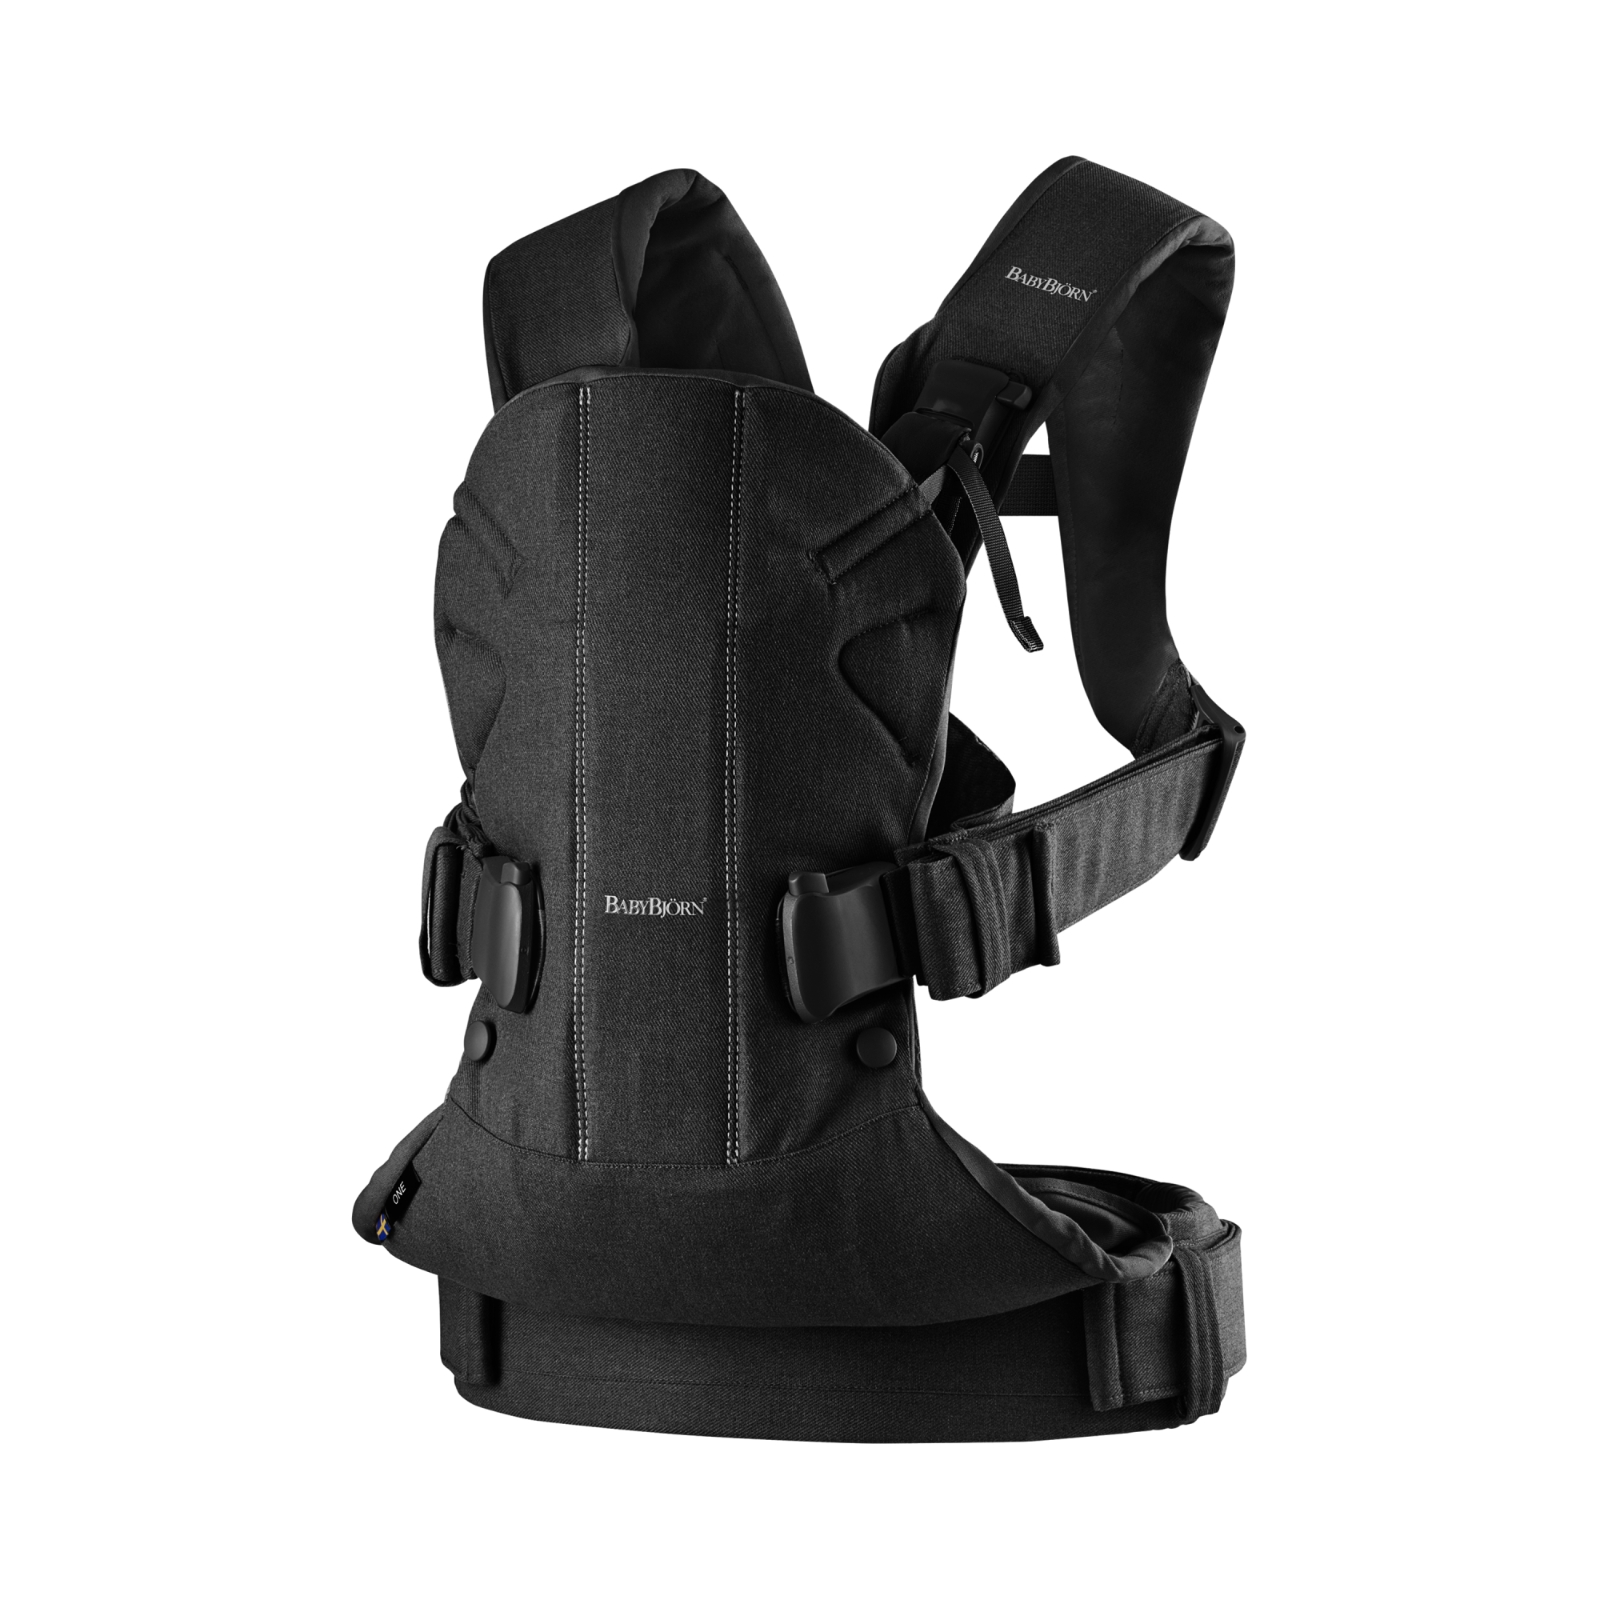 BabyBjorn Carrier One - Black Cotton Mix